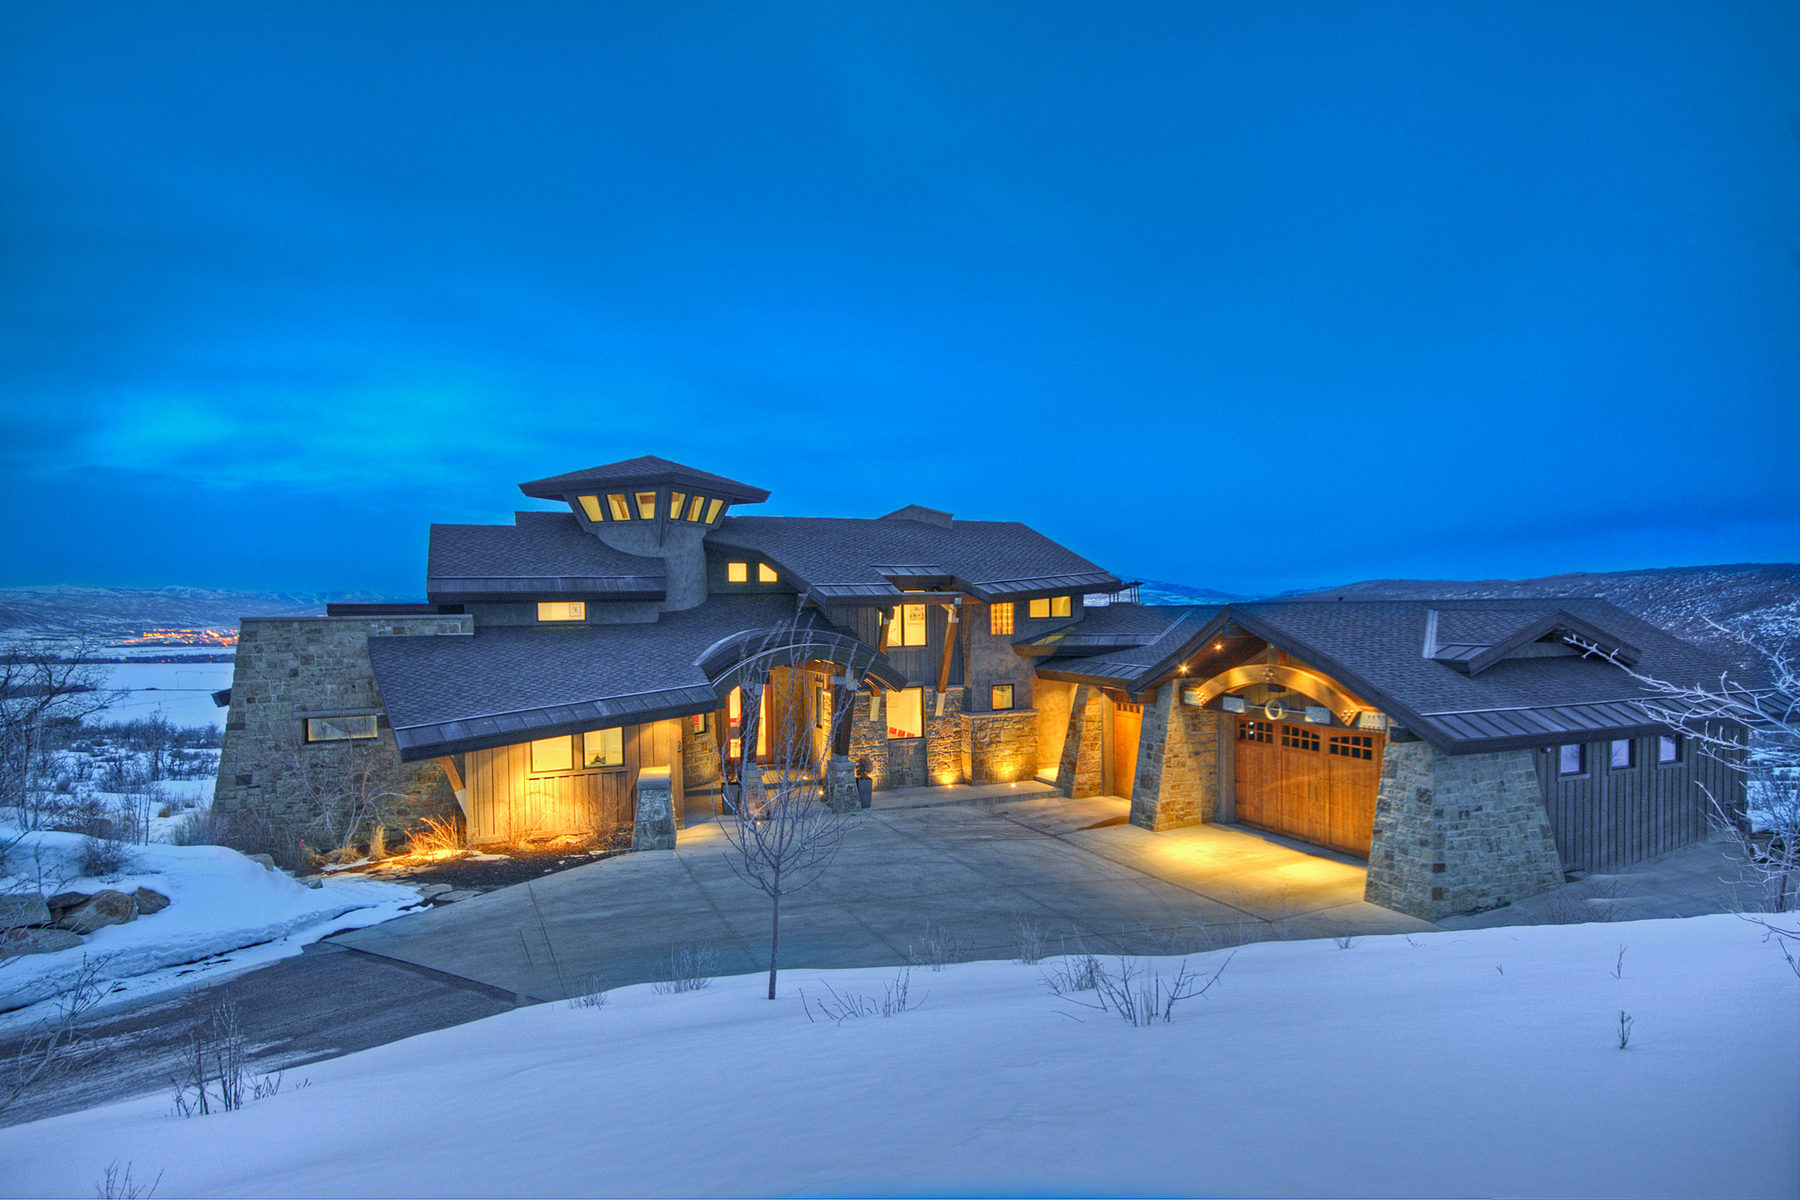 Single Family Home for Sale at Modern Living with a Cozy Park City Feel 25 Marilyn Ct Park City, Utah 84060 United States